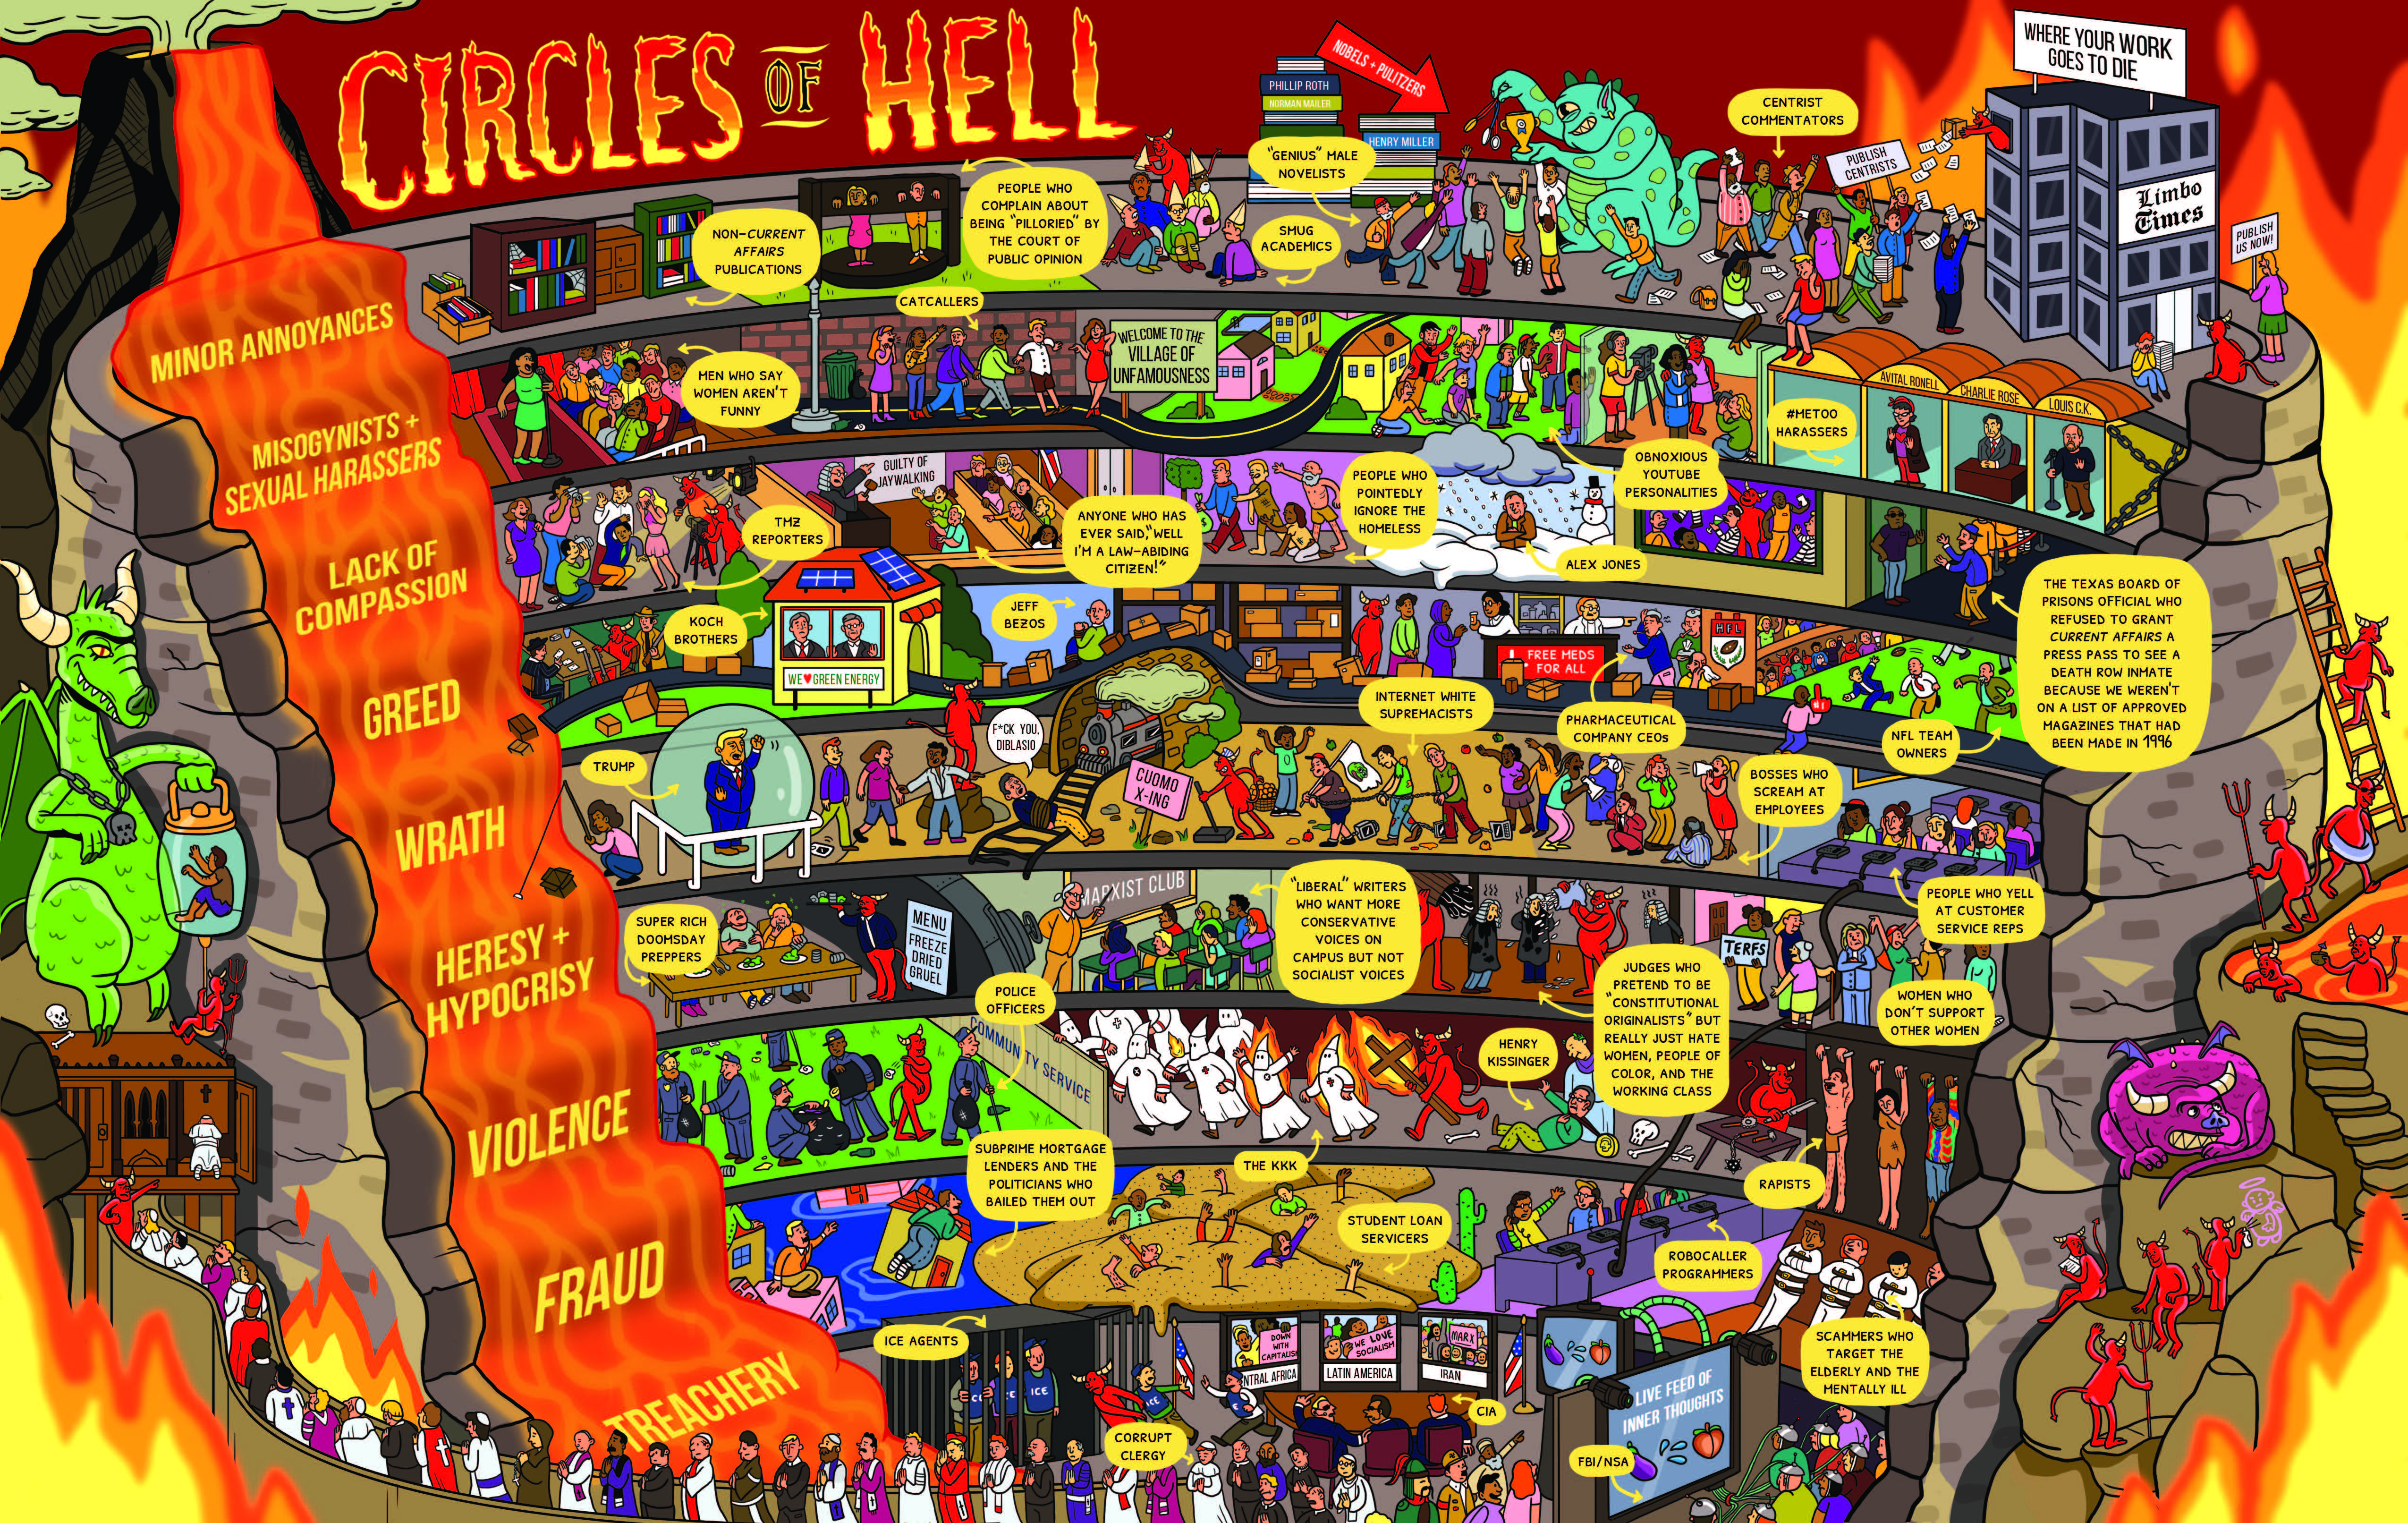 Poster: Circles of Hell